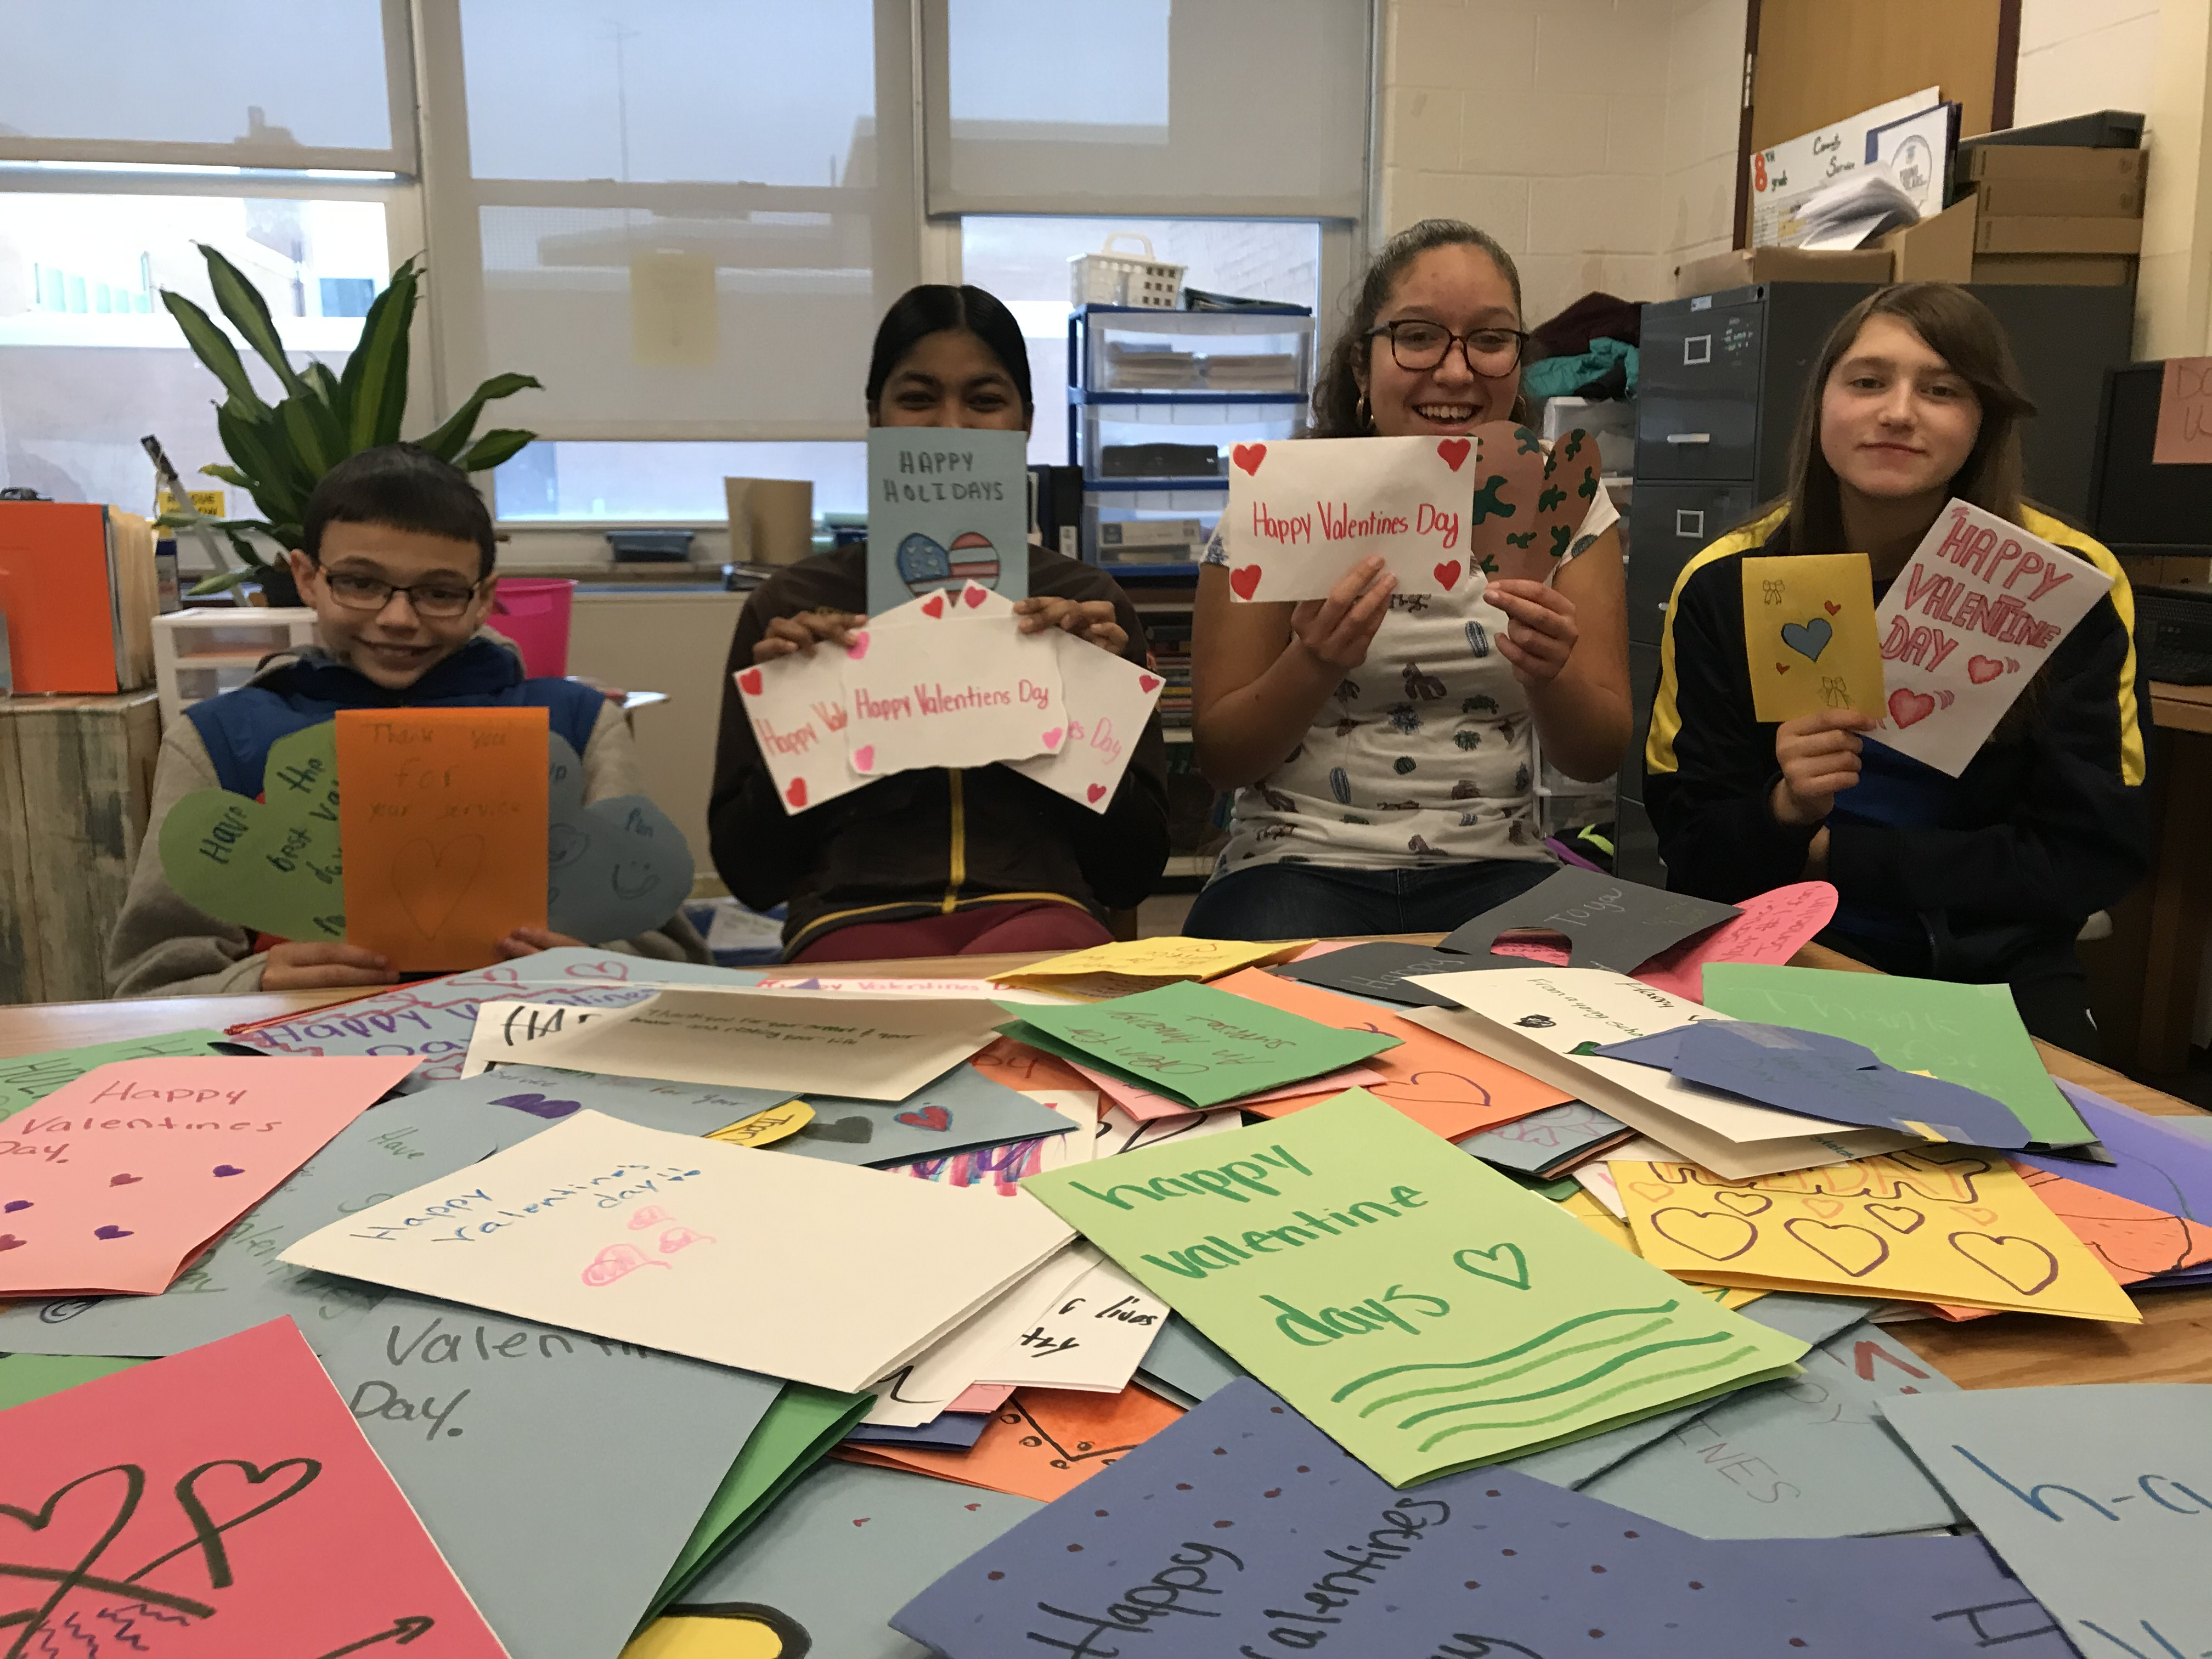 Our JFK students show off handmade Valentines Day cards they made for veterans